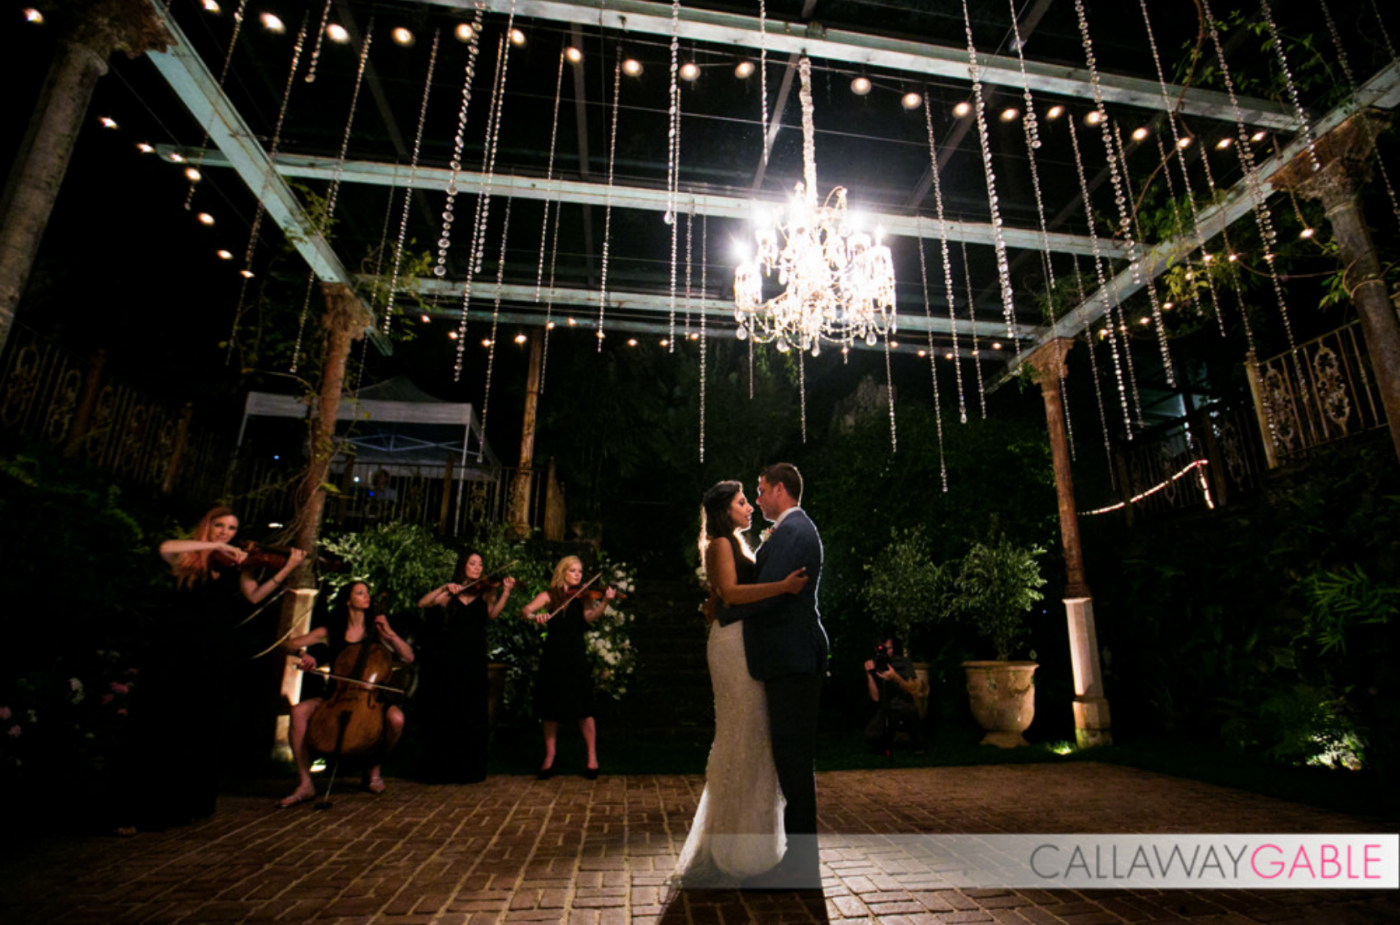 los-angeles-wedding-music-ceremony-first-dance-string-quartet-violin-viola-cello-orange-county-maui-4.png